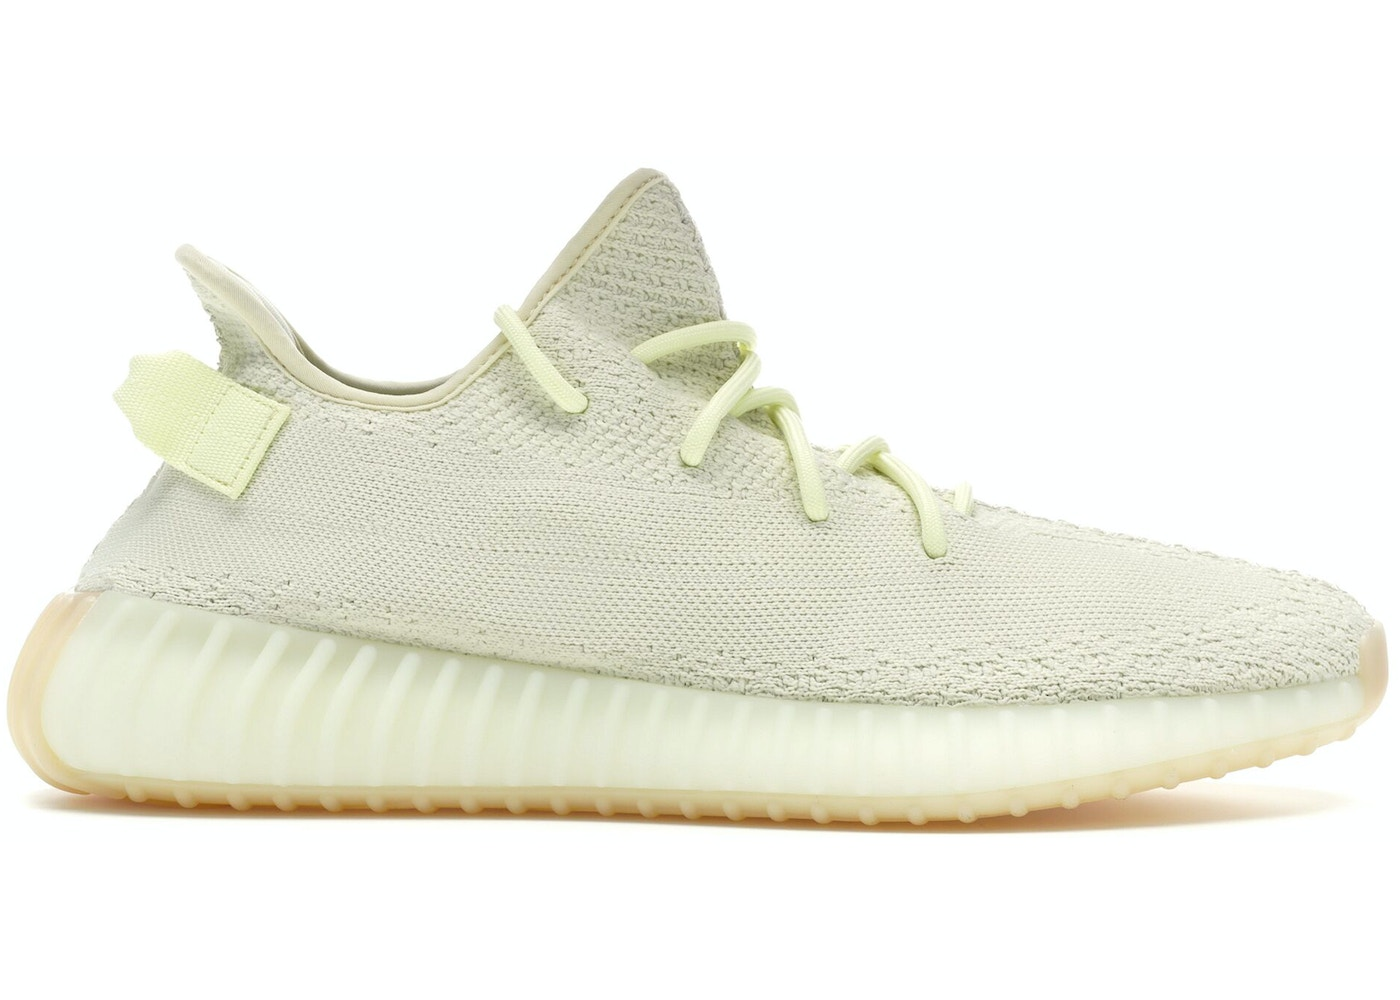 4df8e4590 Buy adidas Yeezy Size 18 Shoes   Deadstock Sneakers